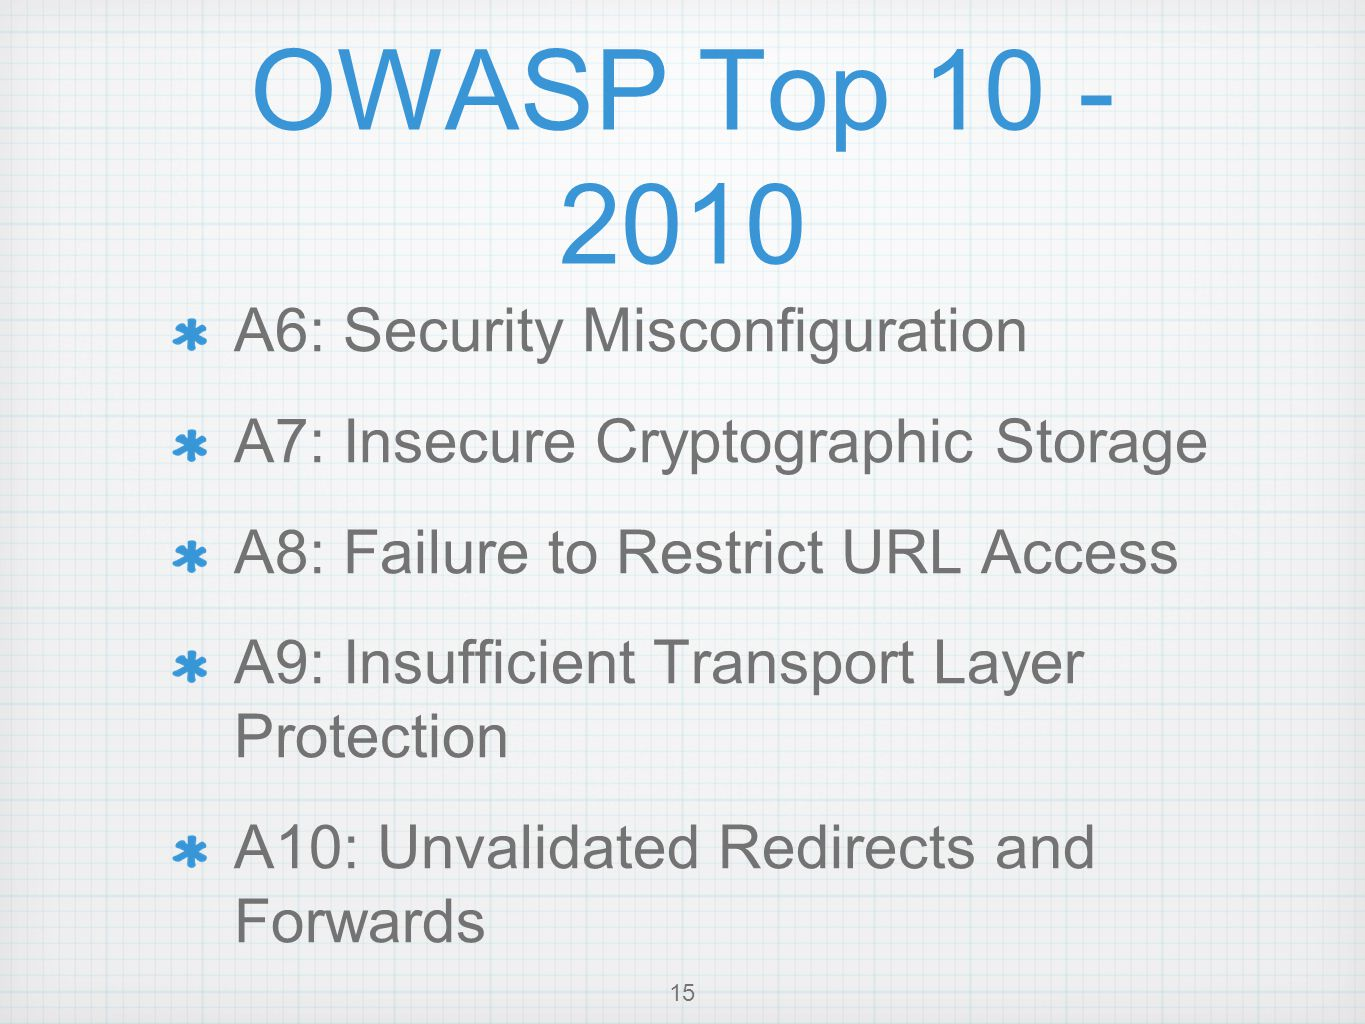 OWASP Top 10 - 2010 A6: Security Misconfiguration A7: Insecure Cryptographic Storage A8: Failure to Restrict URL Access A9: Insufficient Transport Layer Protection A10: Unvalidated Redirects and Forwards 15